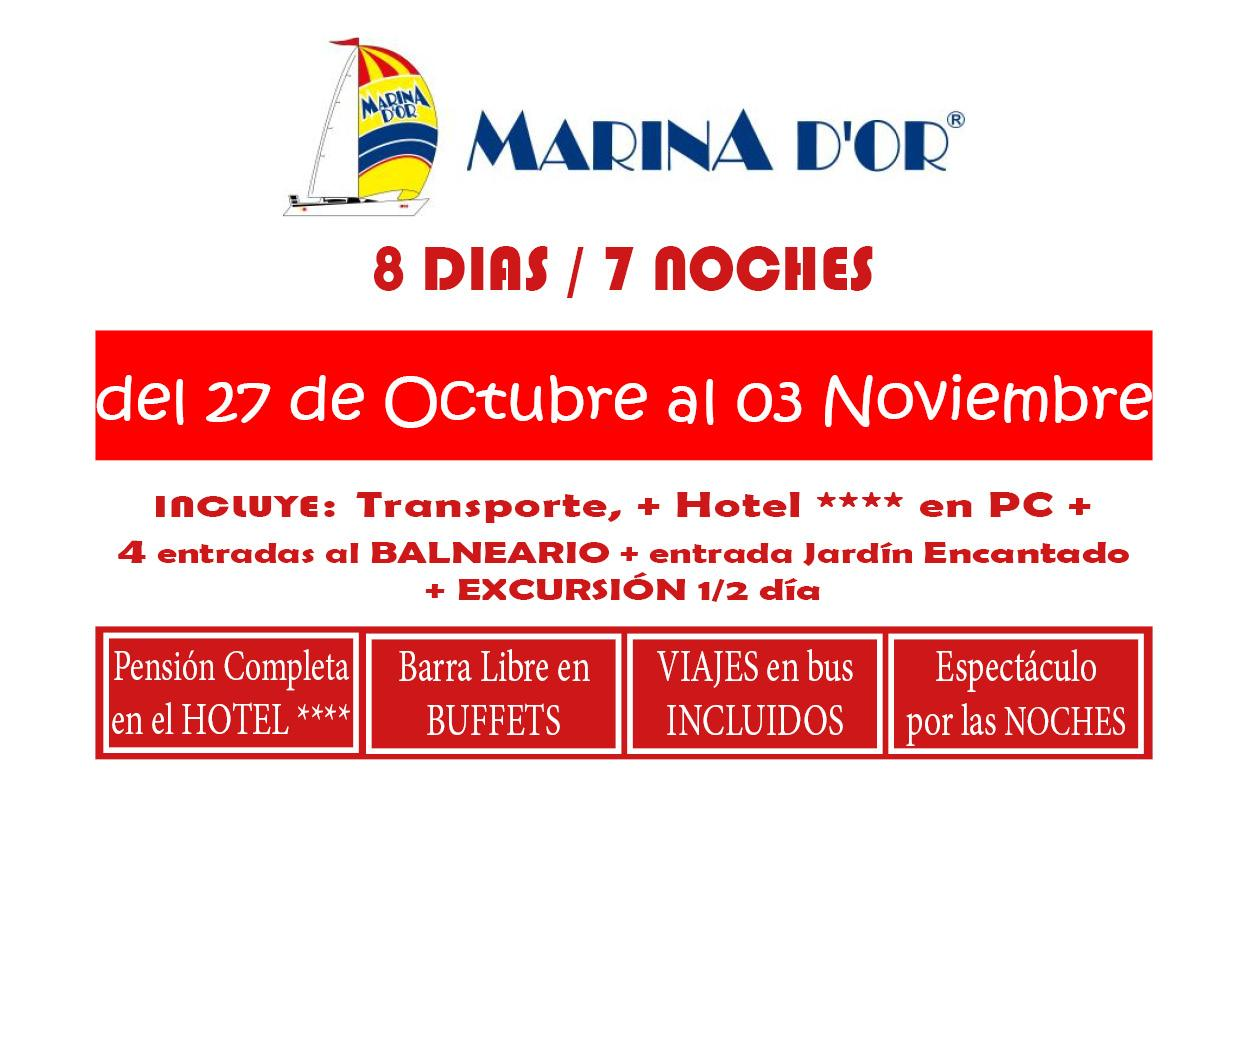 MARINA D`OR # HOTEL 4**** (del 27 de Oct. al 03 Nov. ) # 8 días/7 noches en PC buffet+ bebida